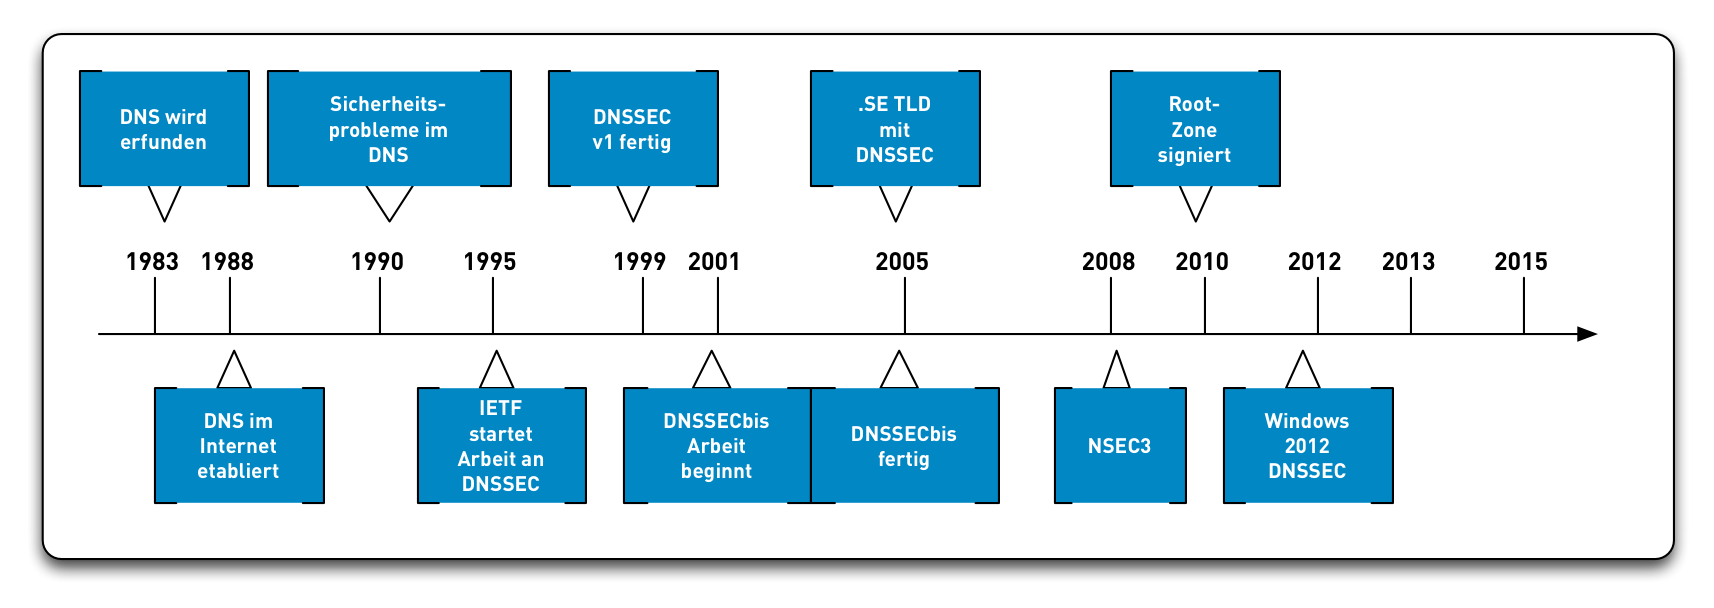 DNSSEC-History12.png